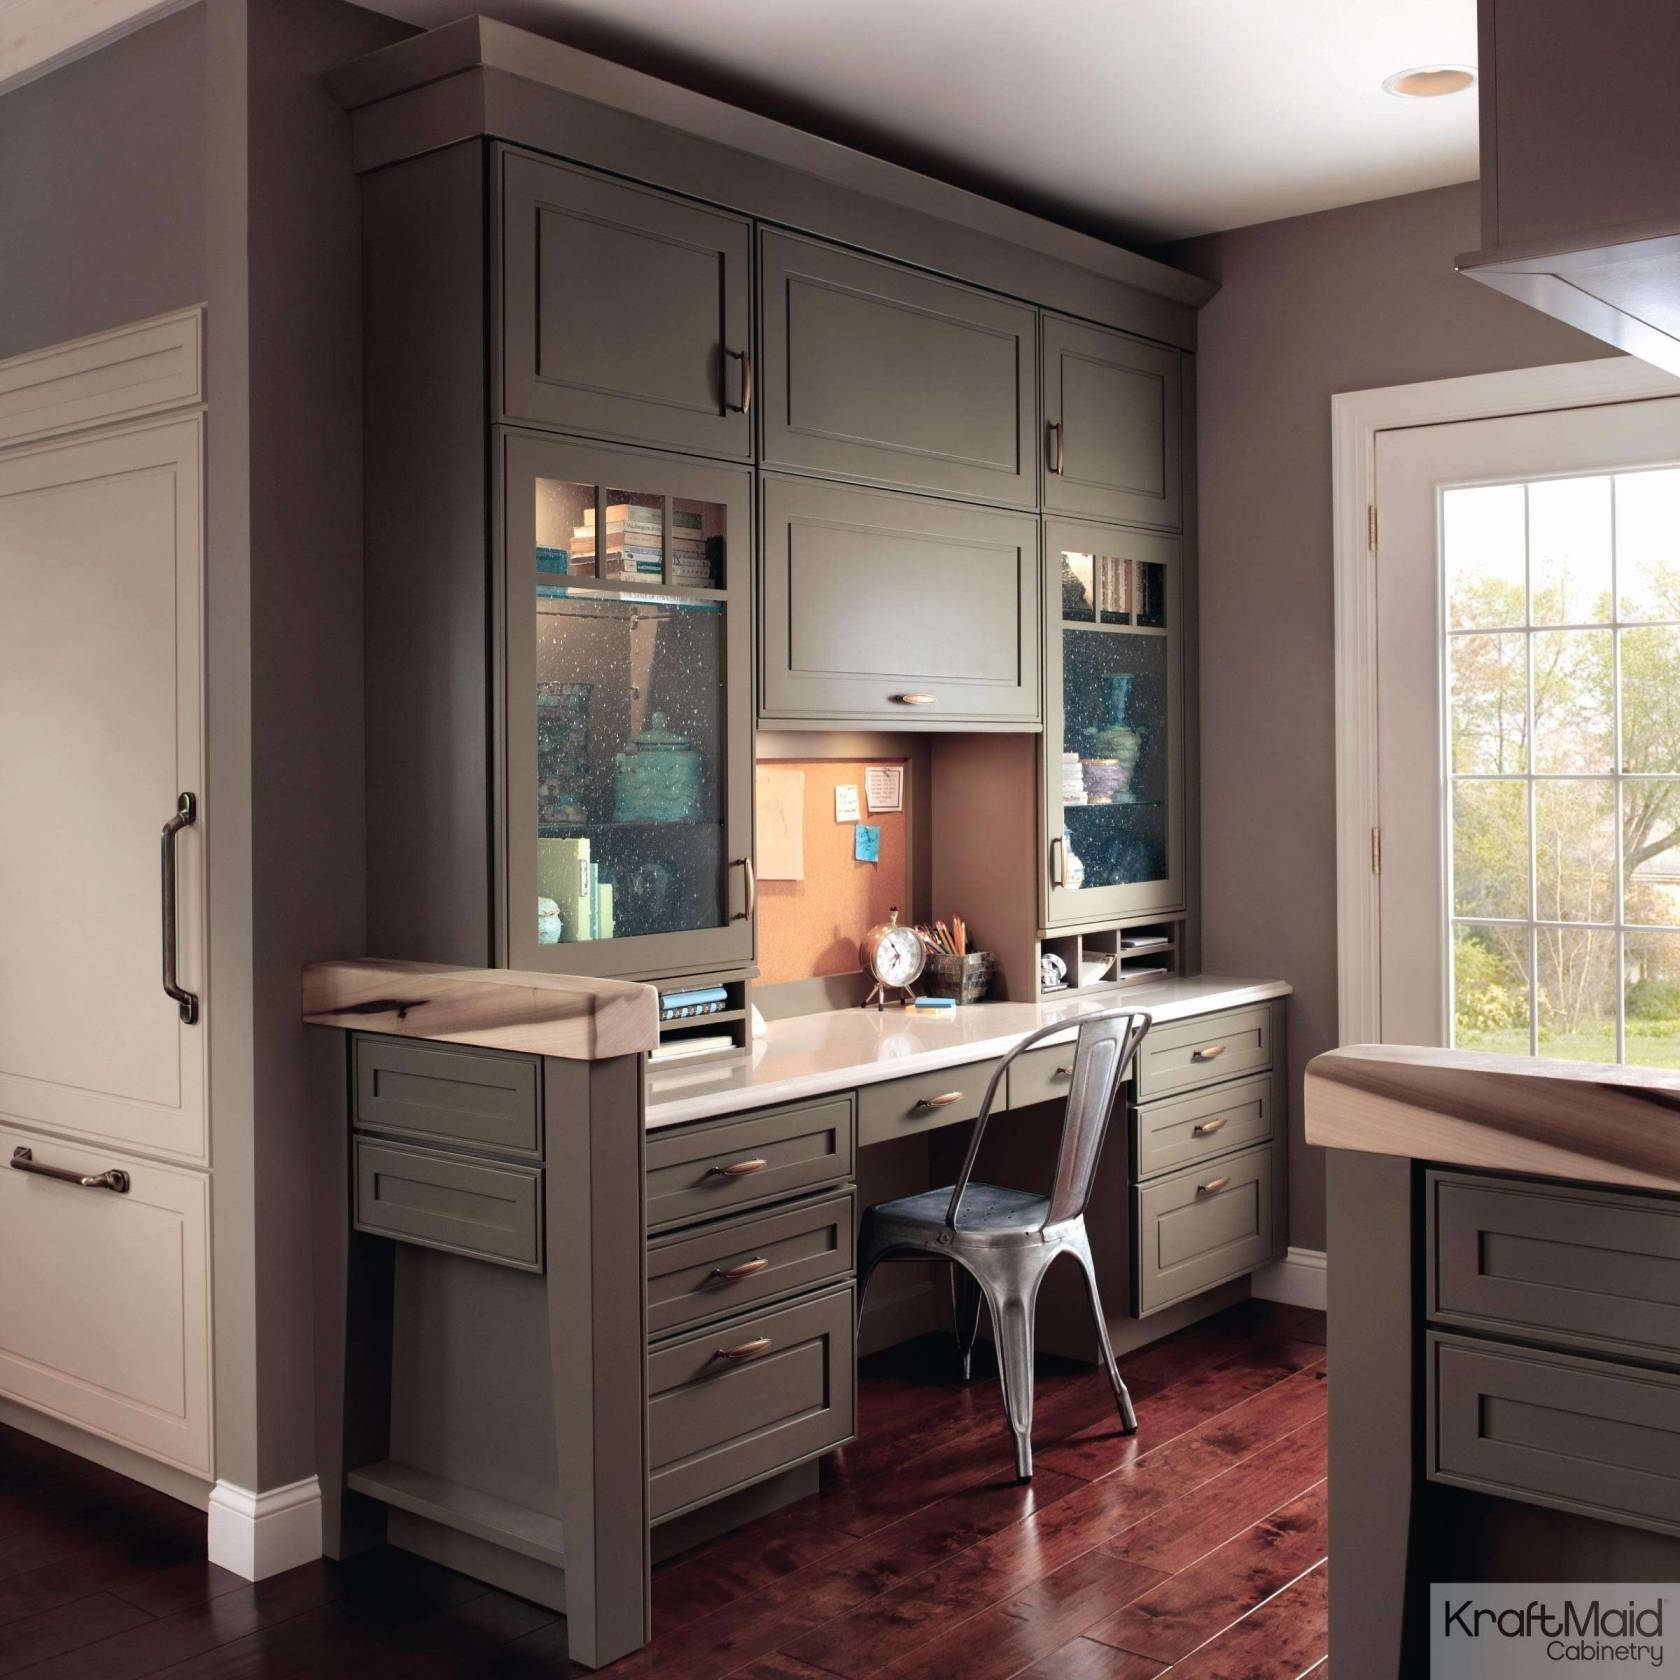 kitchen wall colors with light wood cabinets inspirational 30 white kitchen cabinets with light green walls collection of kitchen wall colors with light wood cabinets